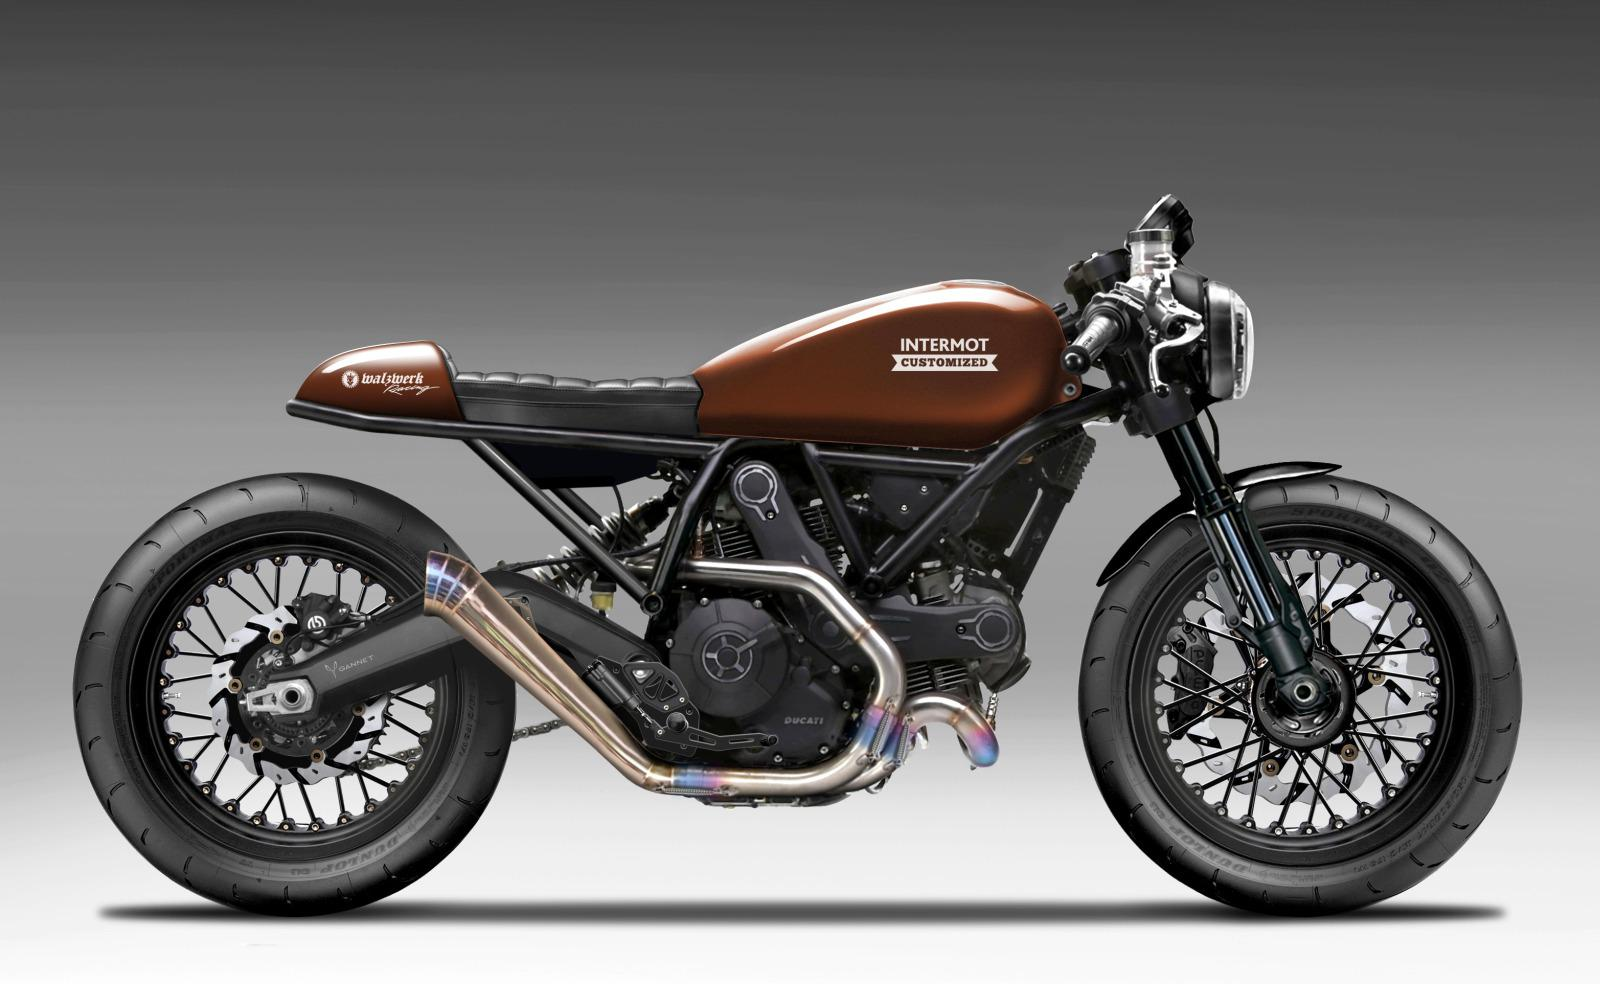 Best Cafe Racer